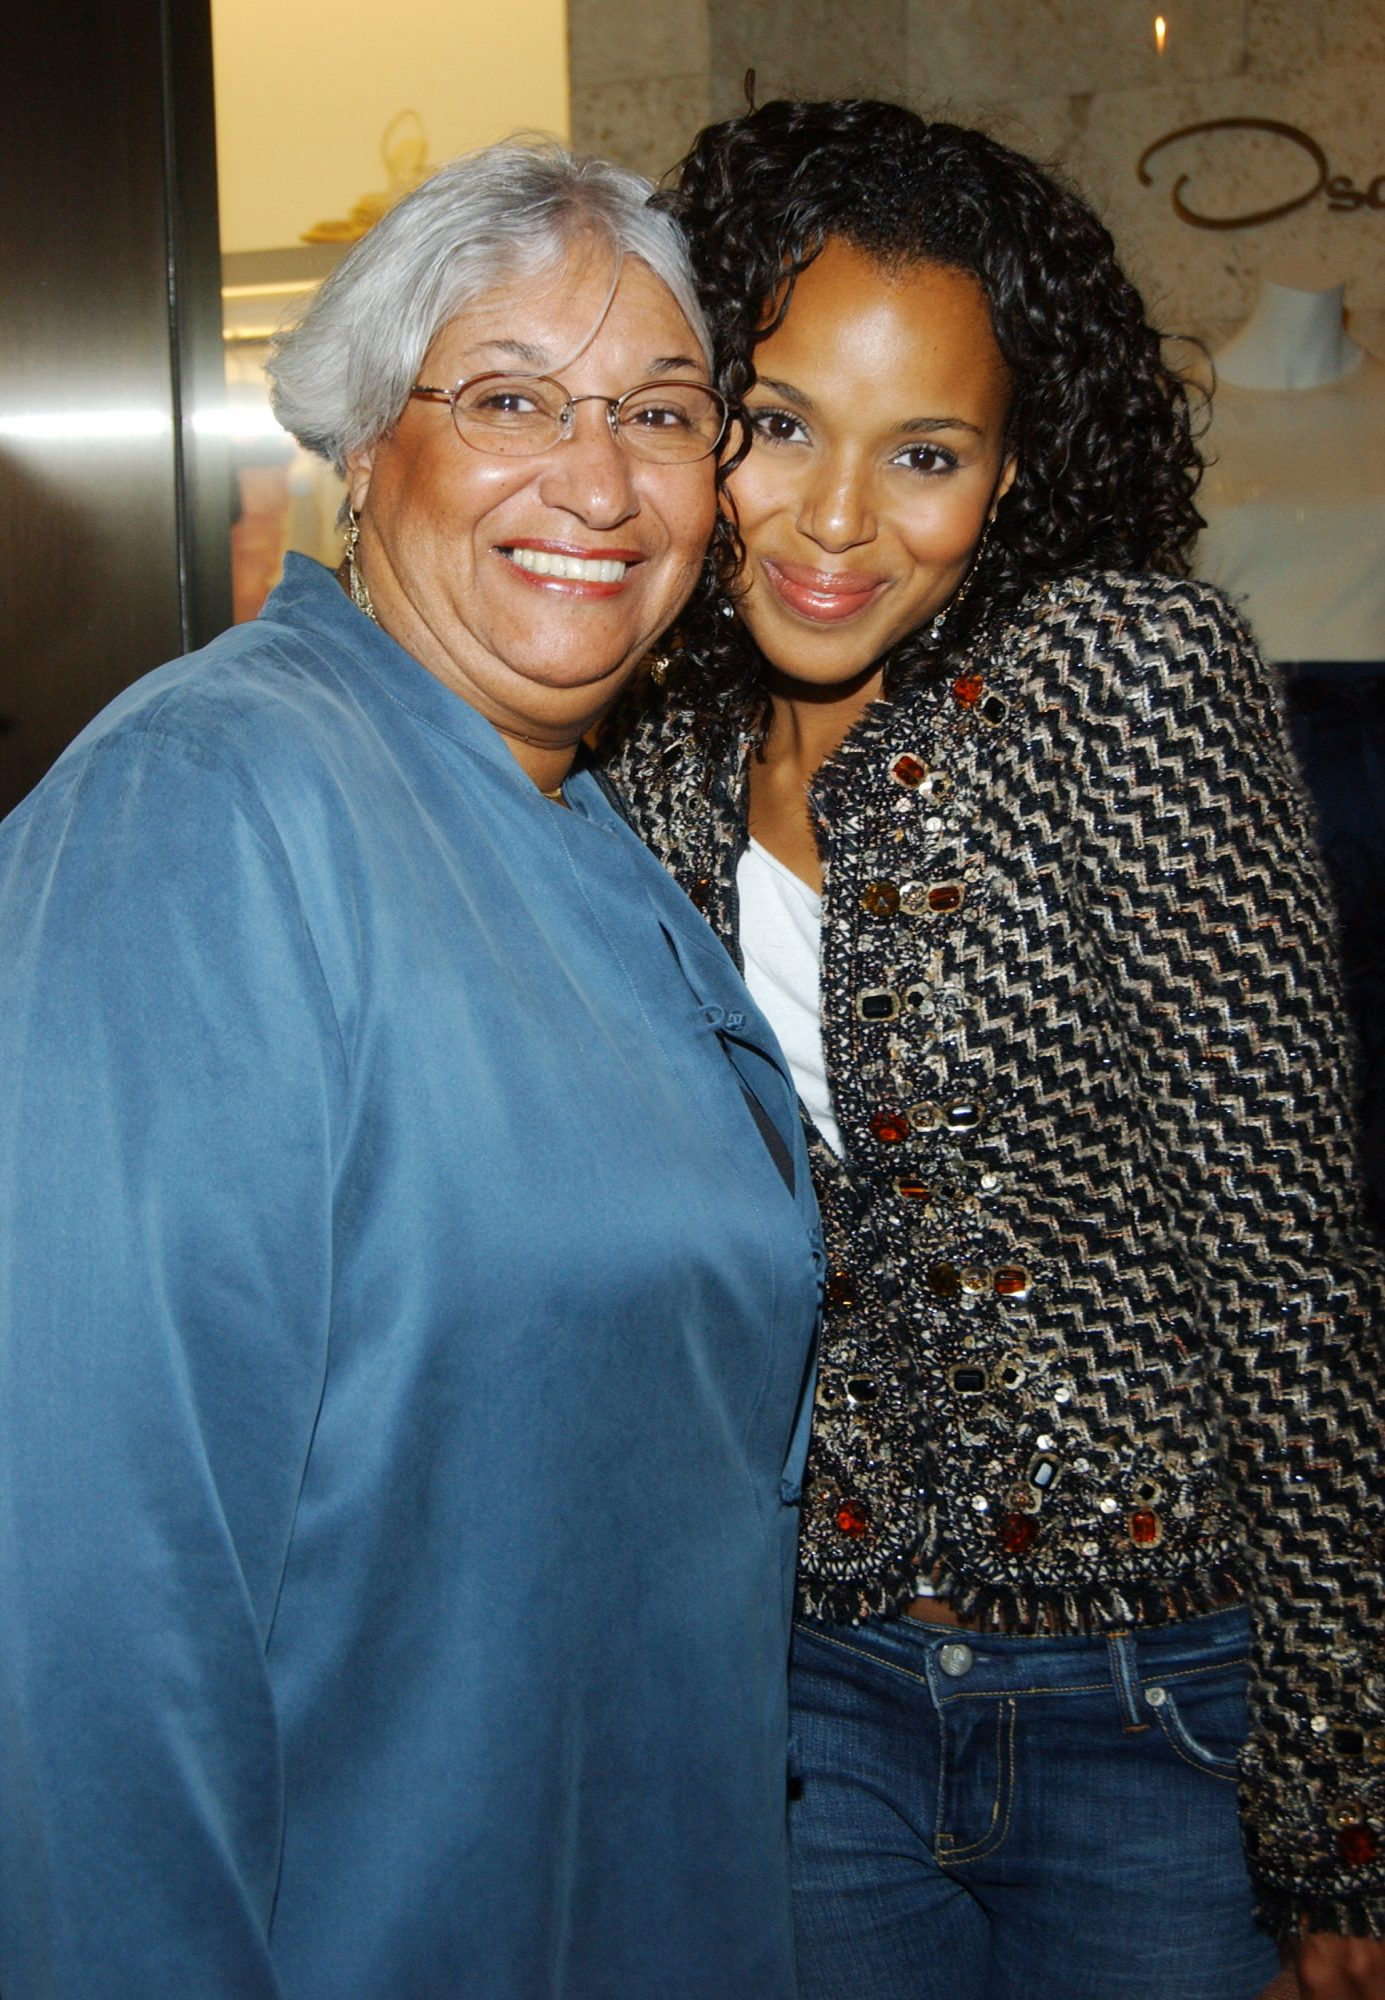 kerry washington and mother